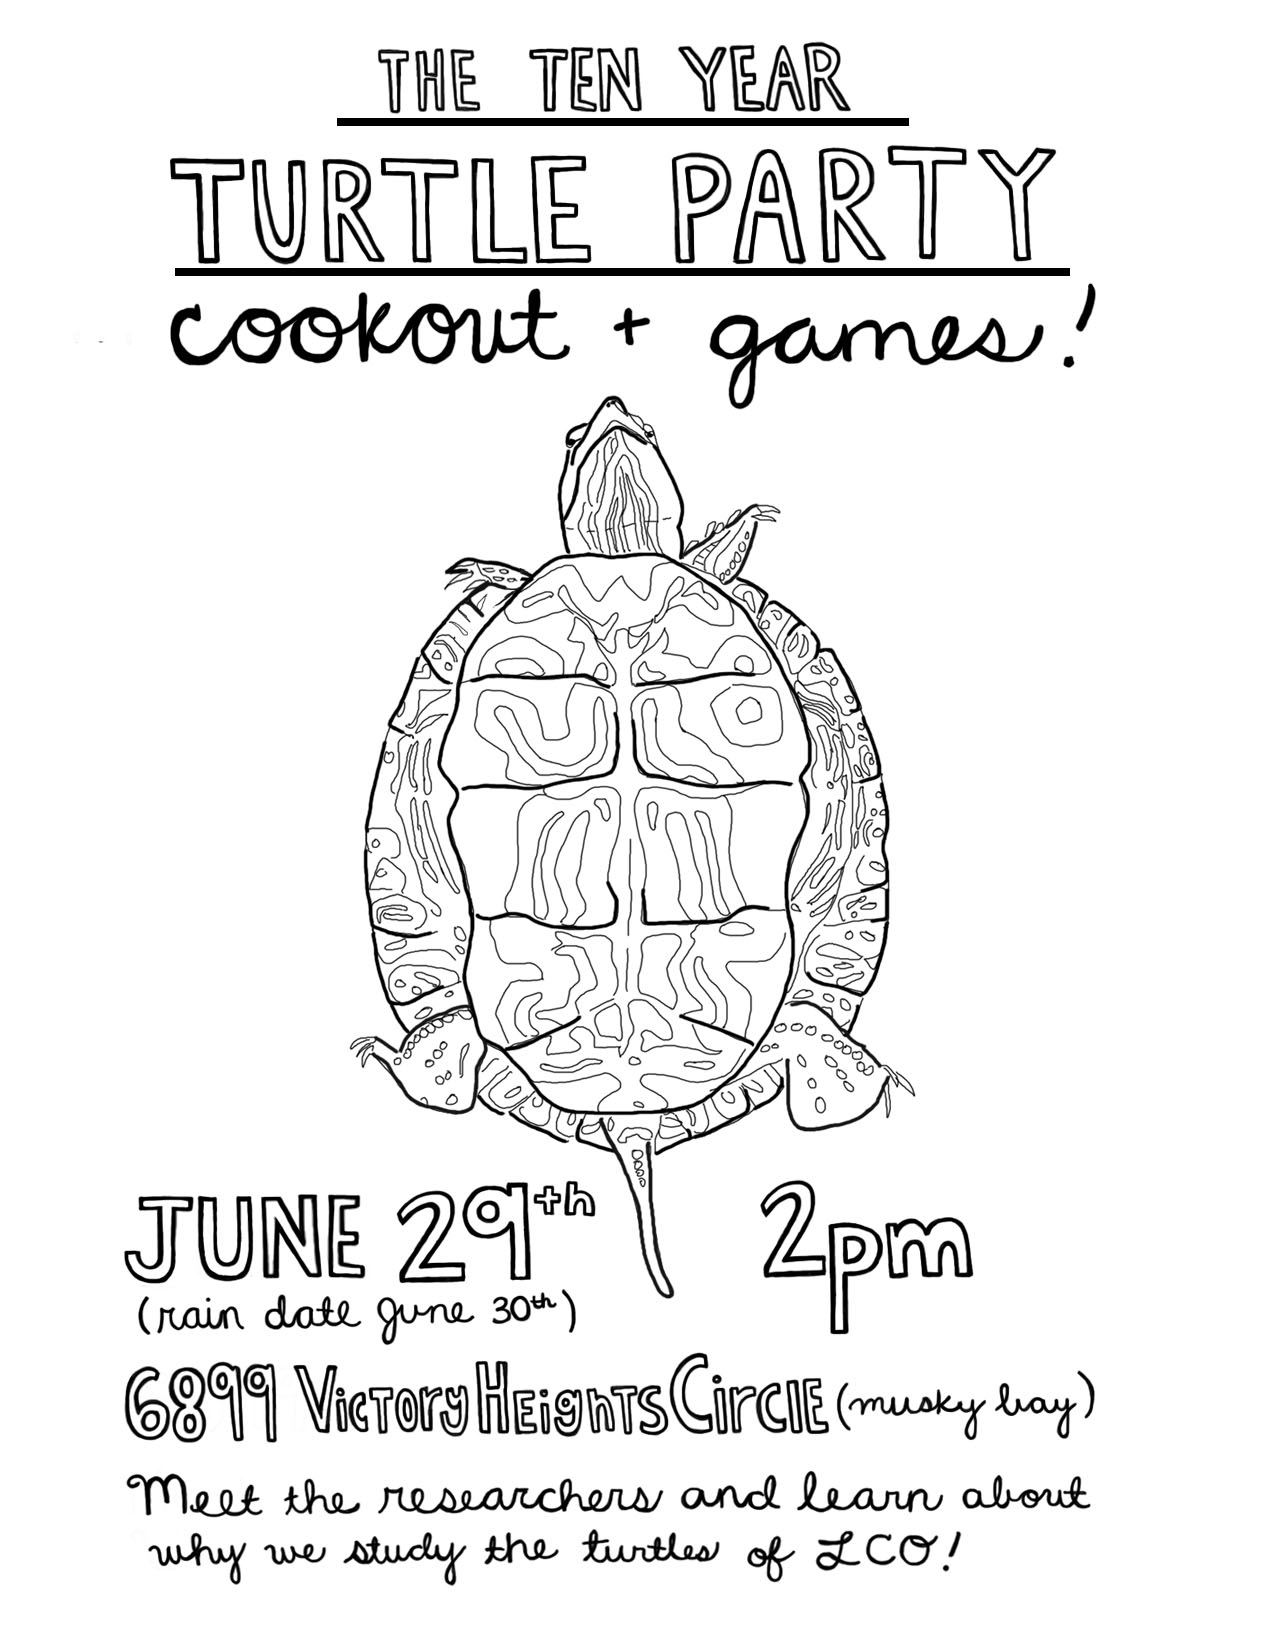 The Ten Year Turtle Party Cookout and Games. June 29th, 2pm (rain date June 30th). Meet the researchers and learn about why we study the turtles of LCO!